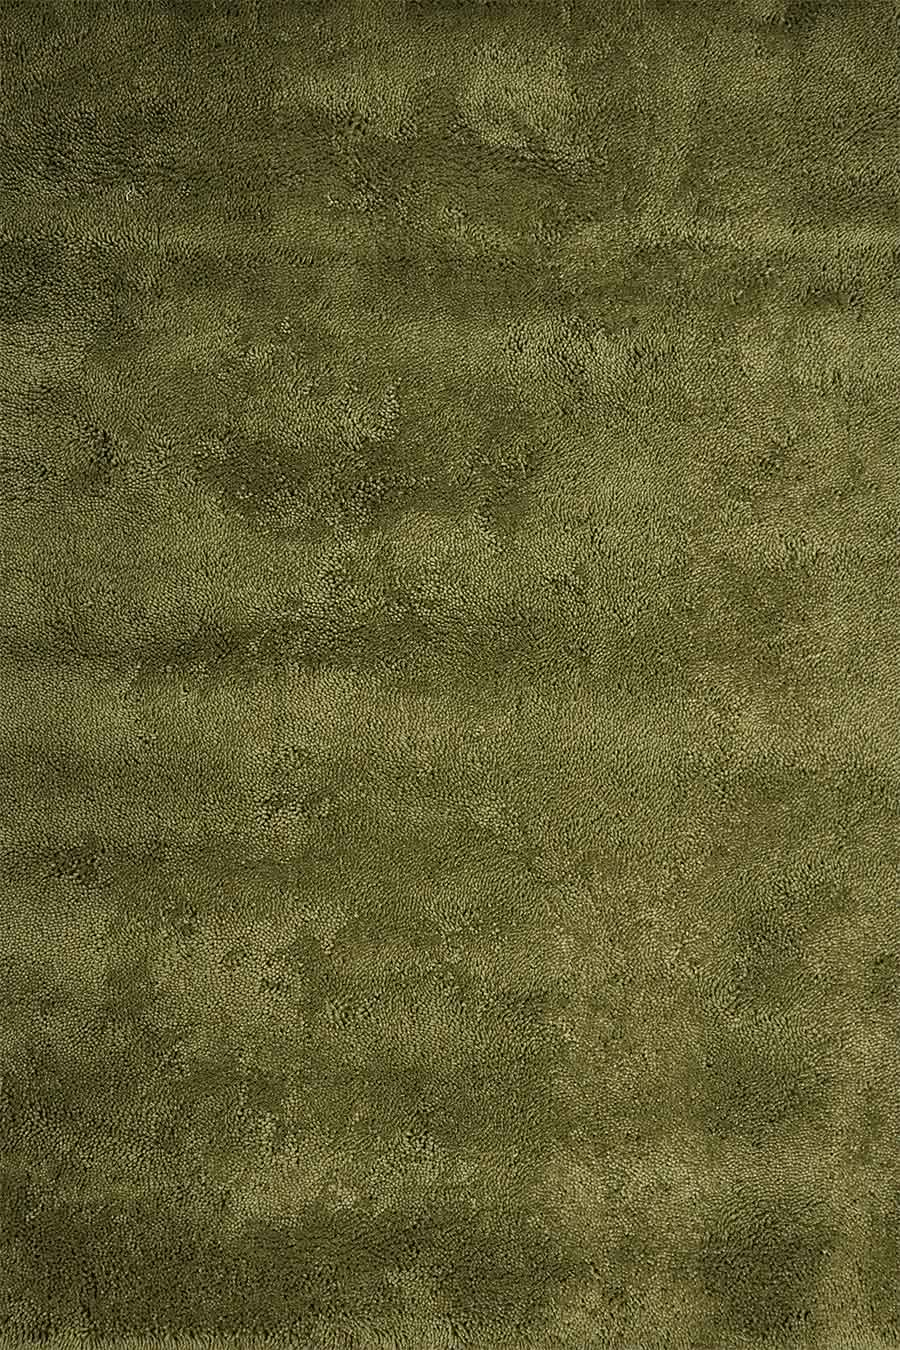 Overhead view of textured Napoleon Shag rug in olive green colour